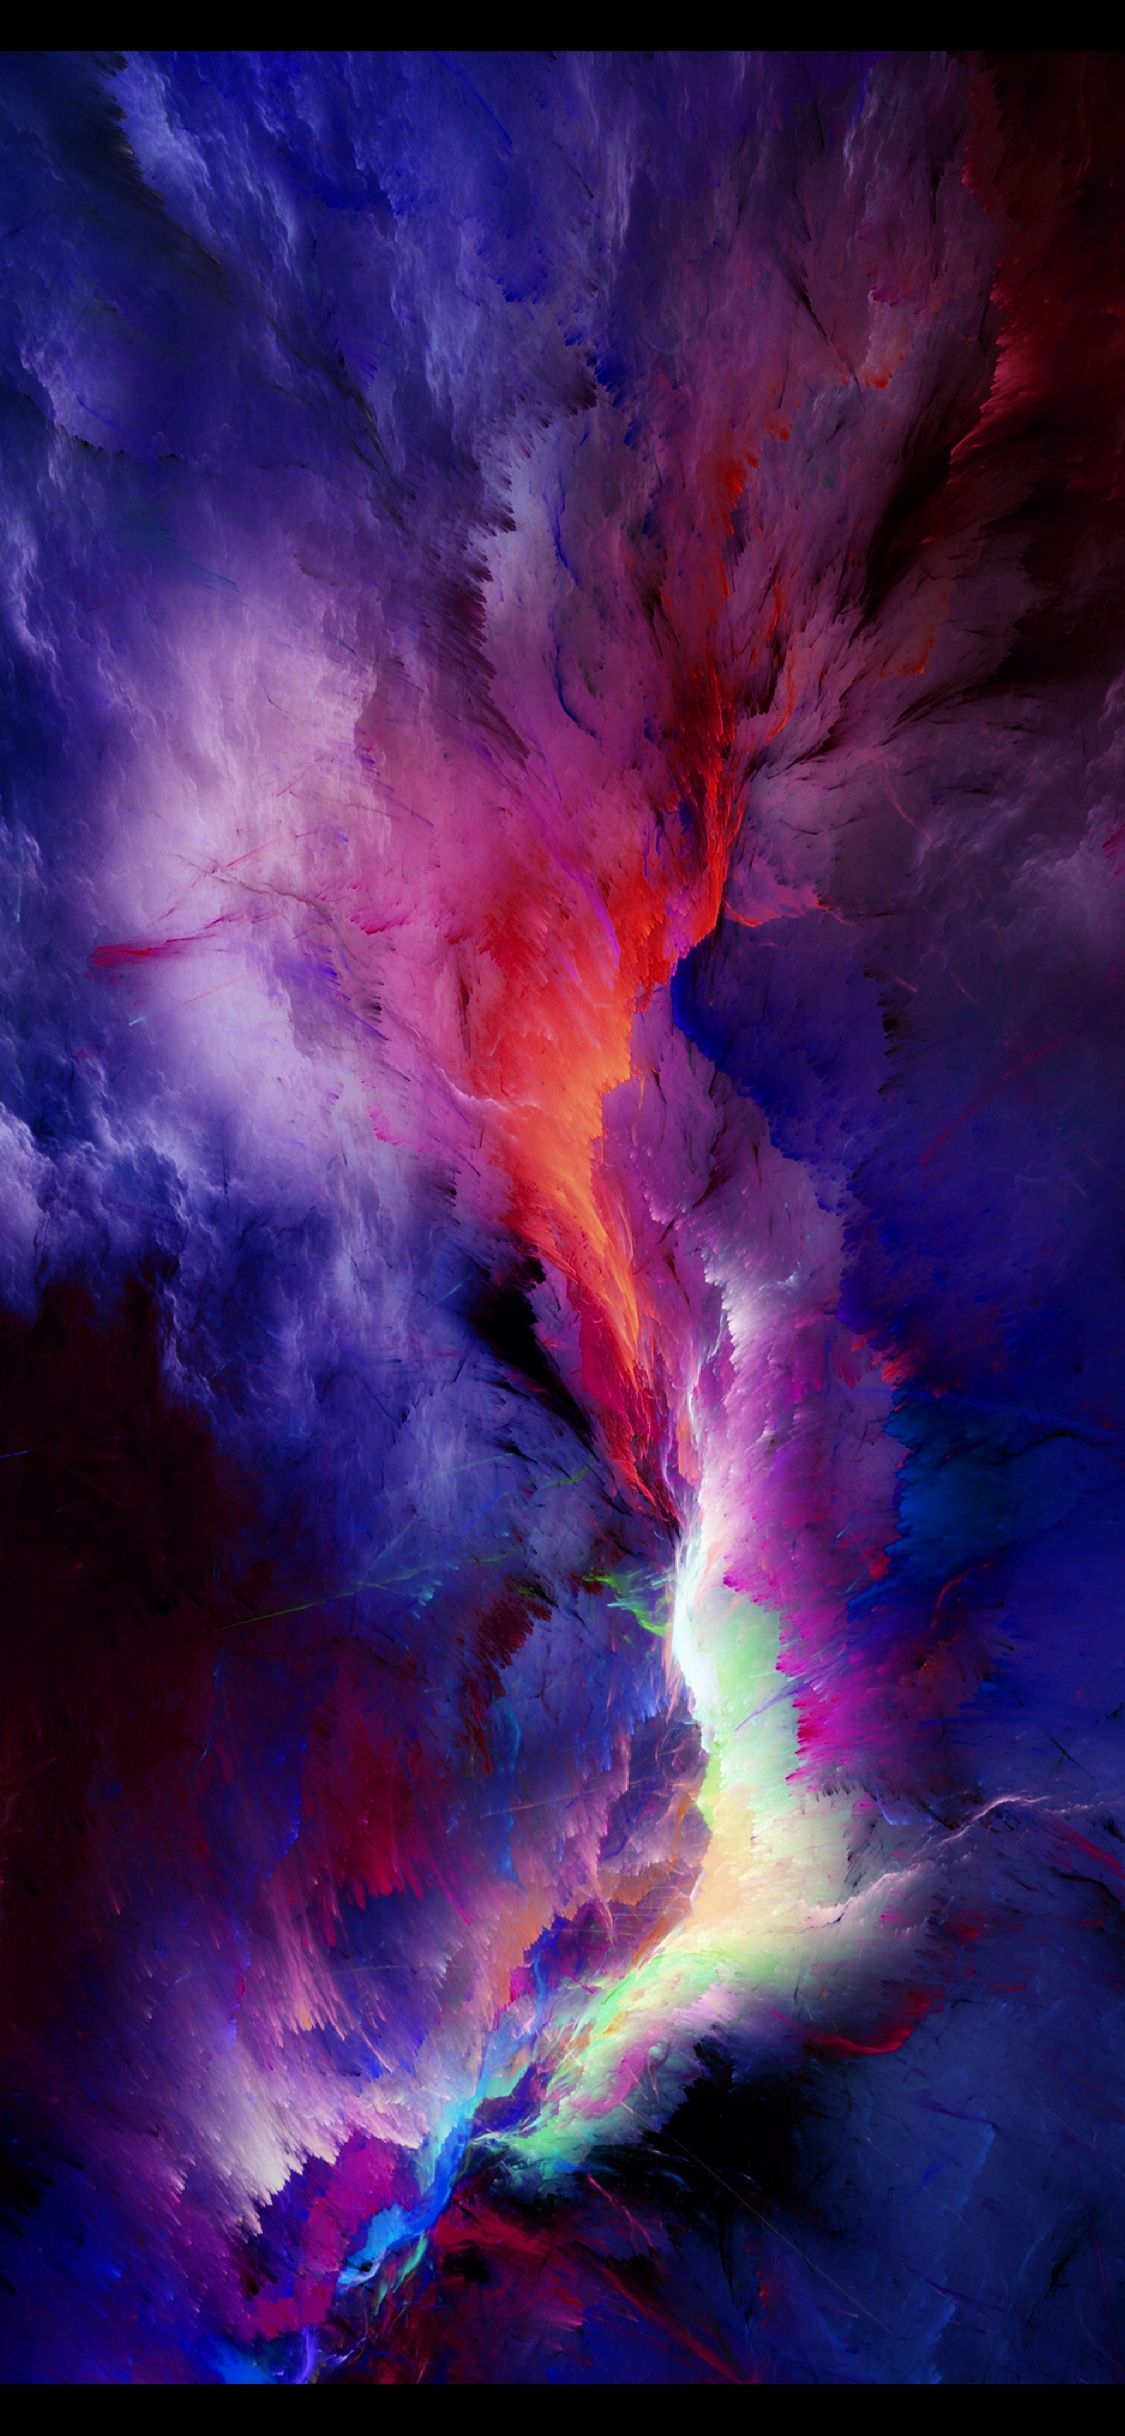 A nebula of color Wallpaper space Abstract Watercolor 1125x2436